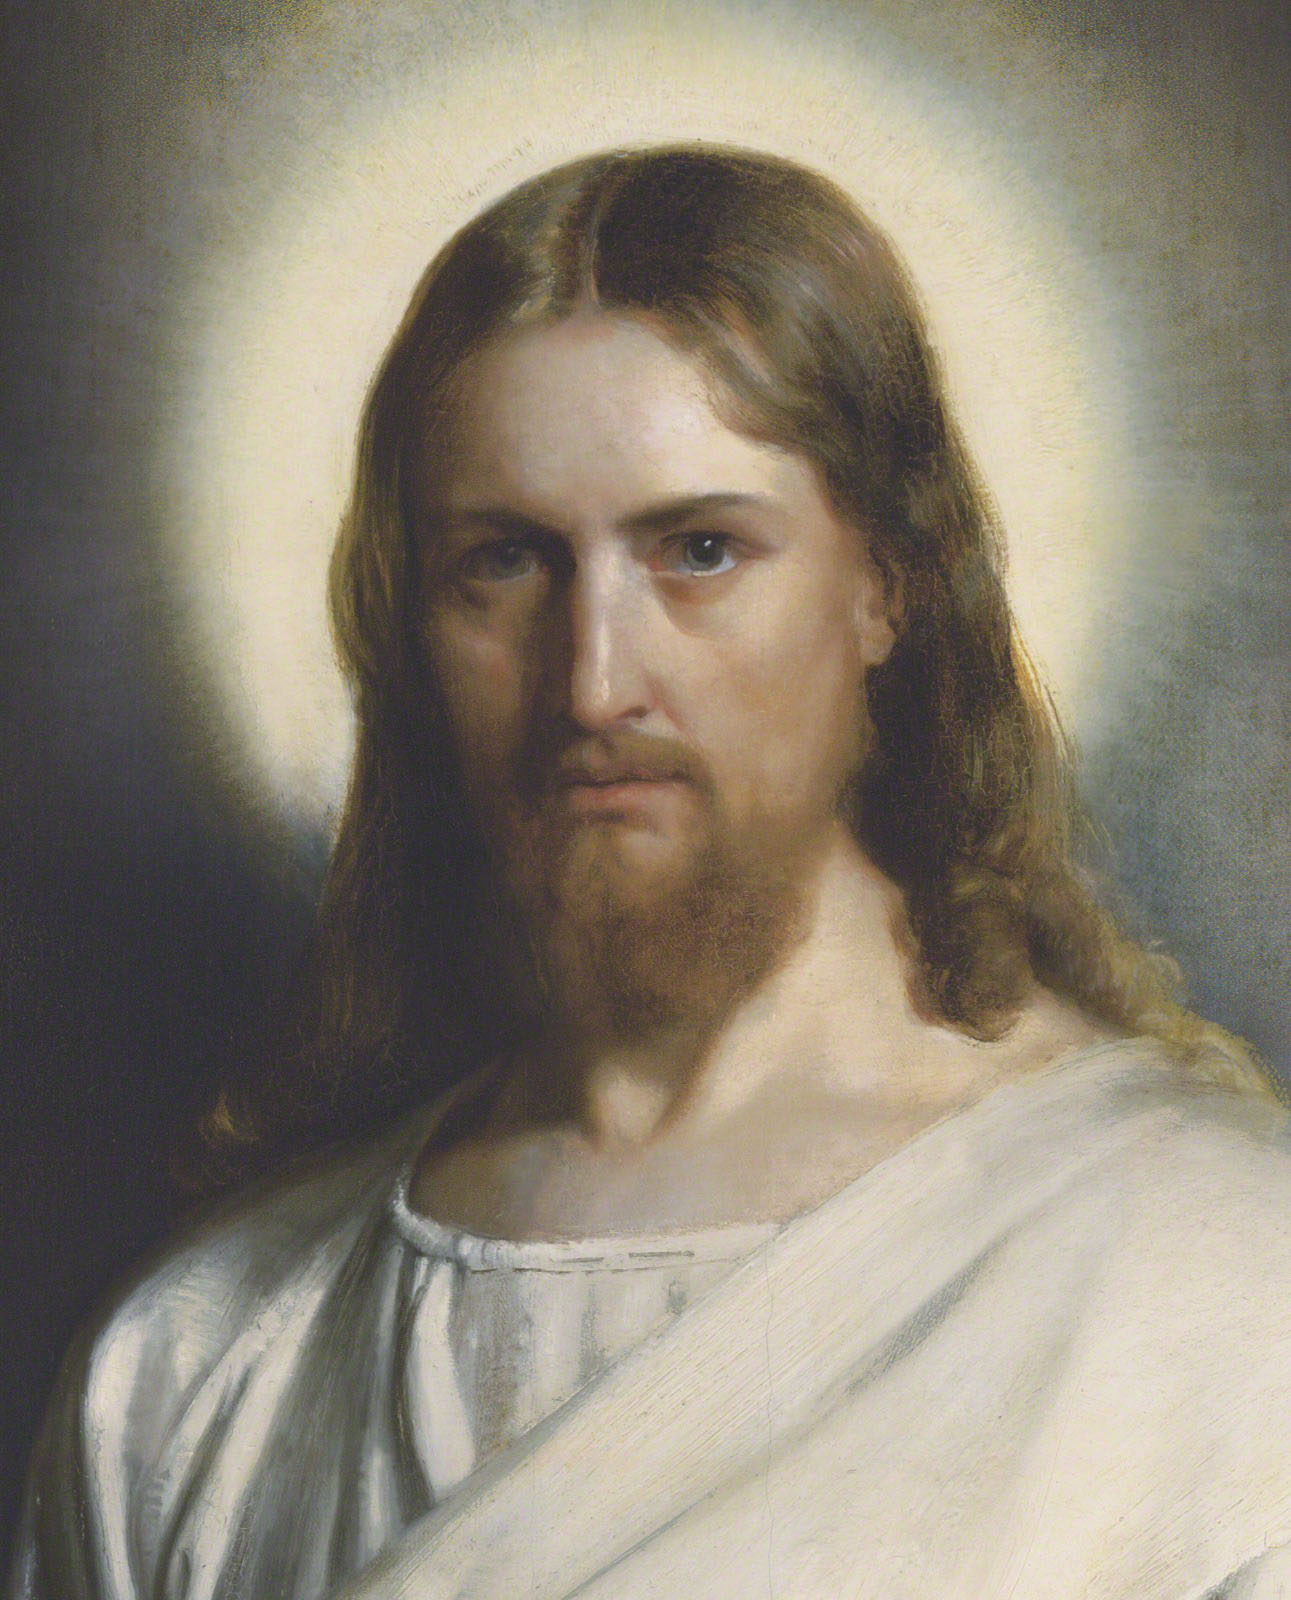 portrait-of-christ-carl-bloch-1200